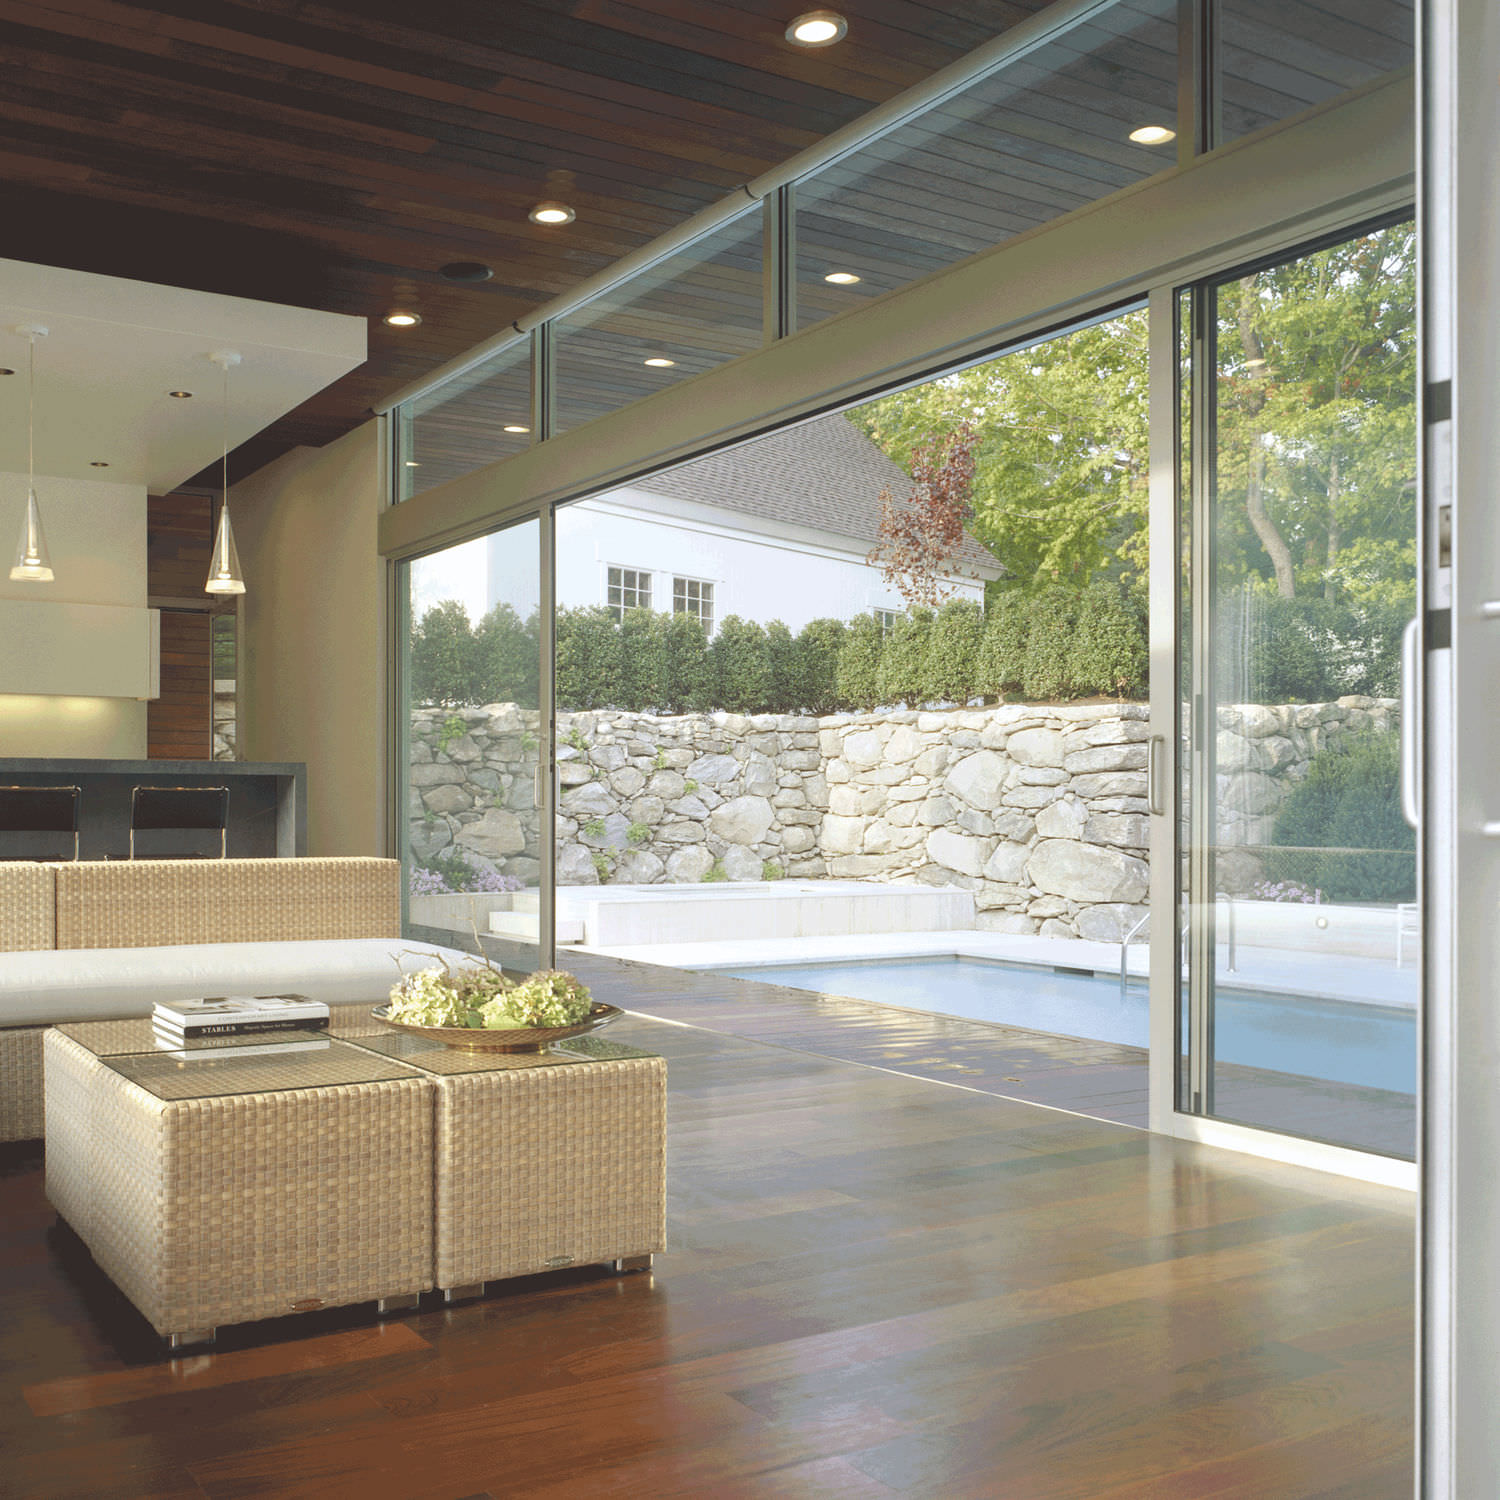 ... Sliding Patio Door / Aluminum / Double Glazed / Thermal Break ...